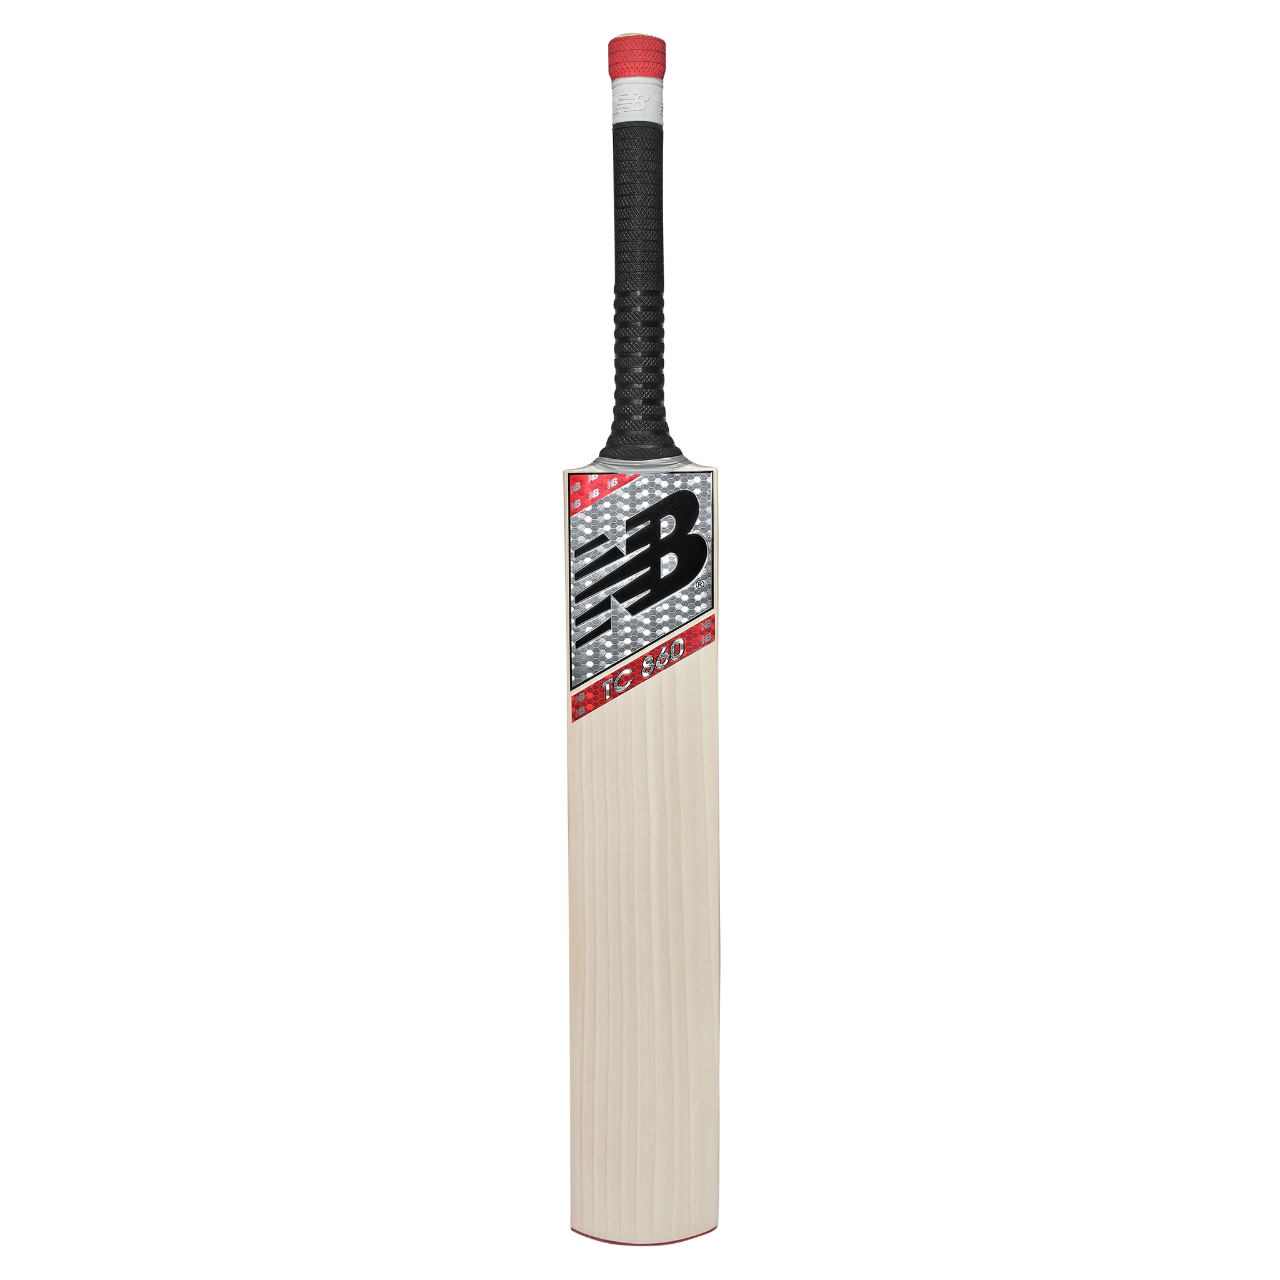 2021 New Balance TC 560 Junior Cricket Bat